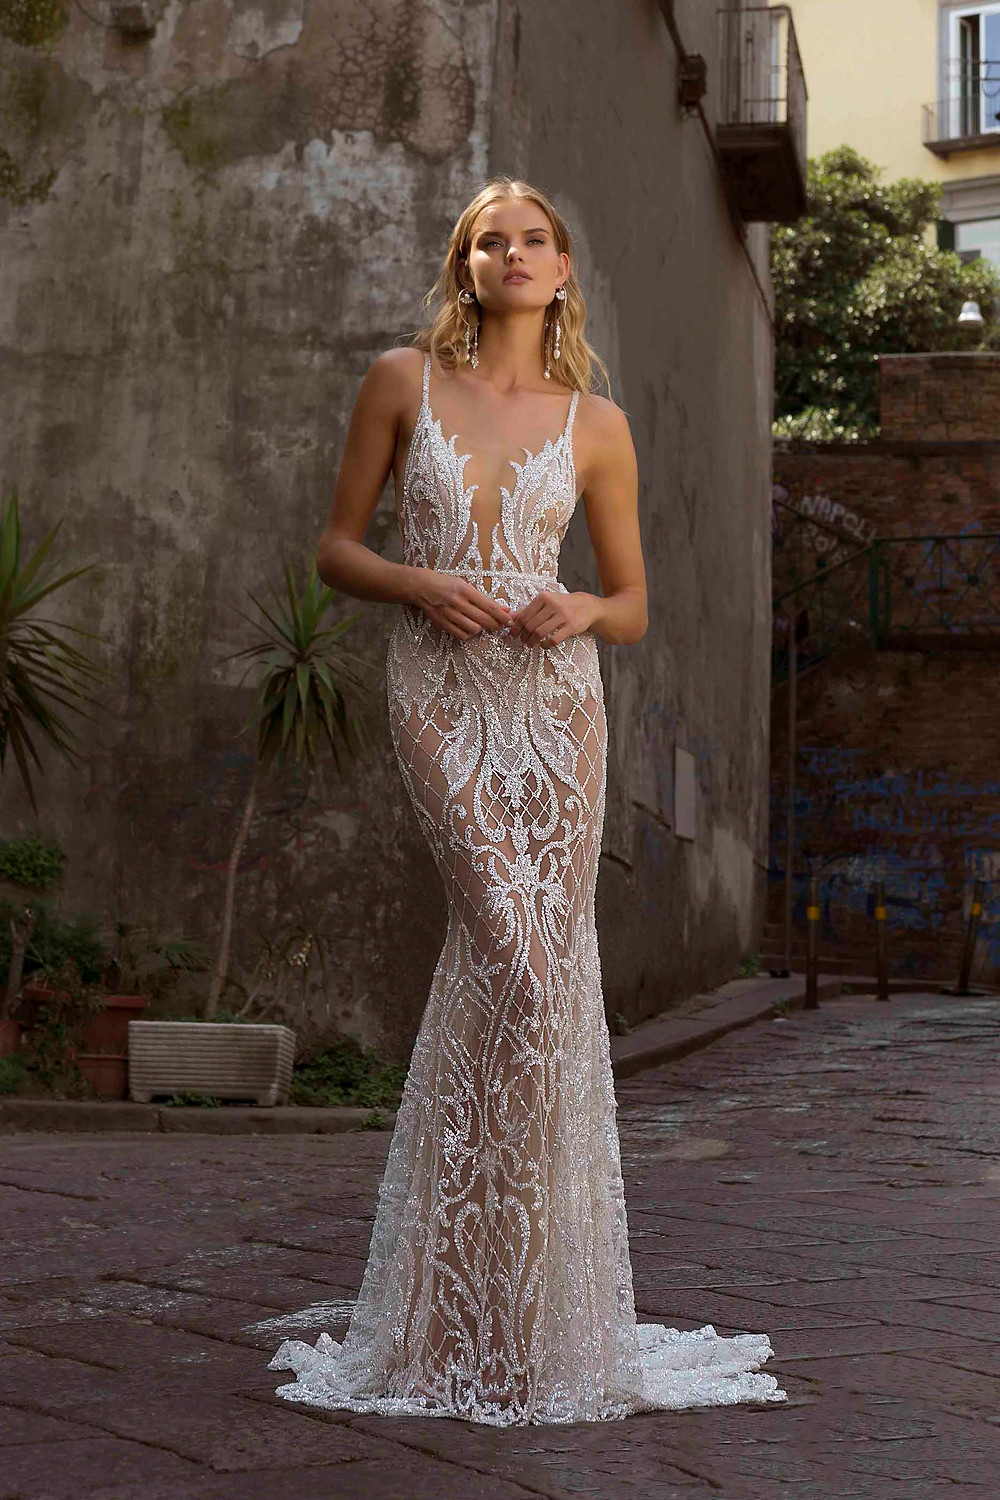 A sparkly, sexy mermaid wedding dress, with thin straps, low v neckline and crystals